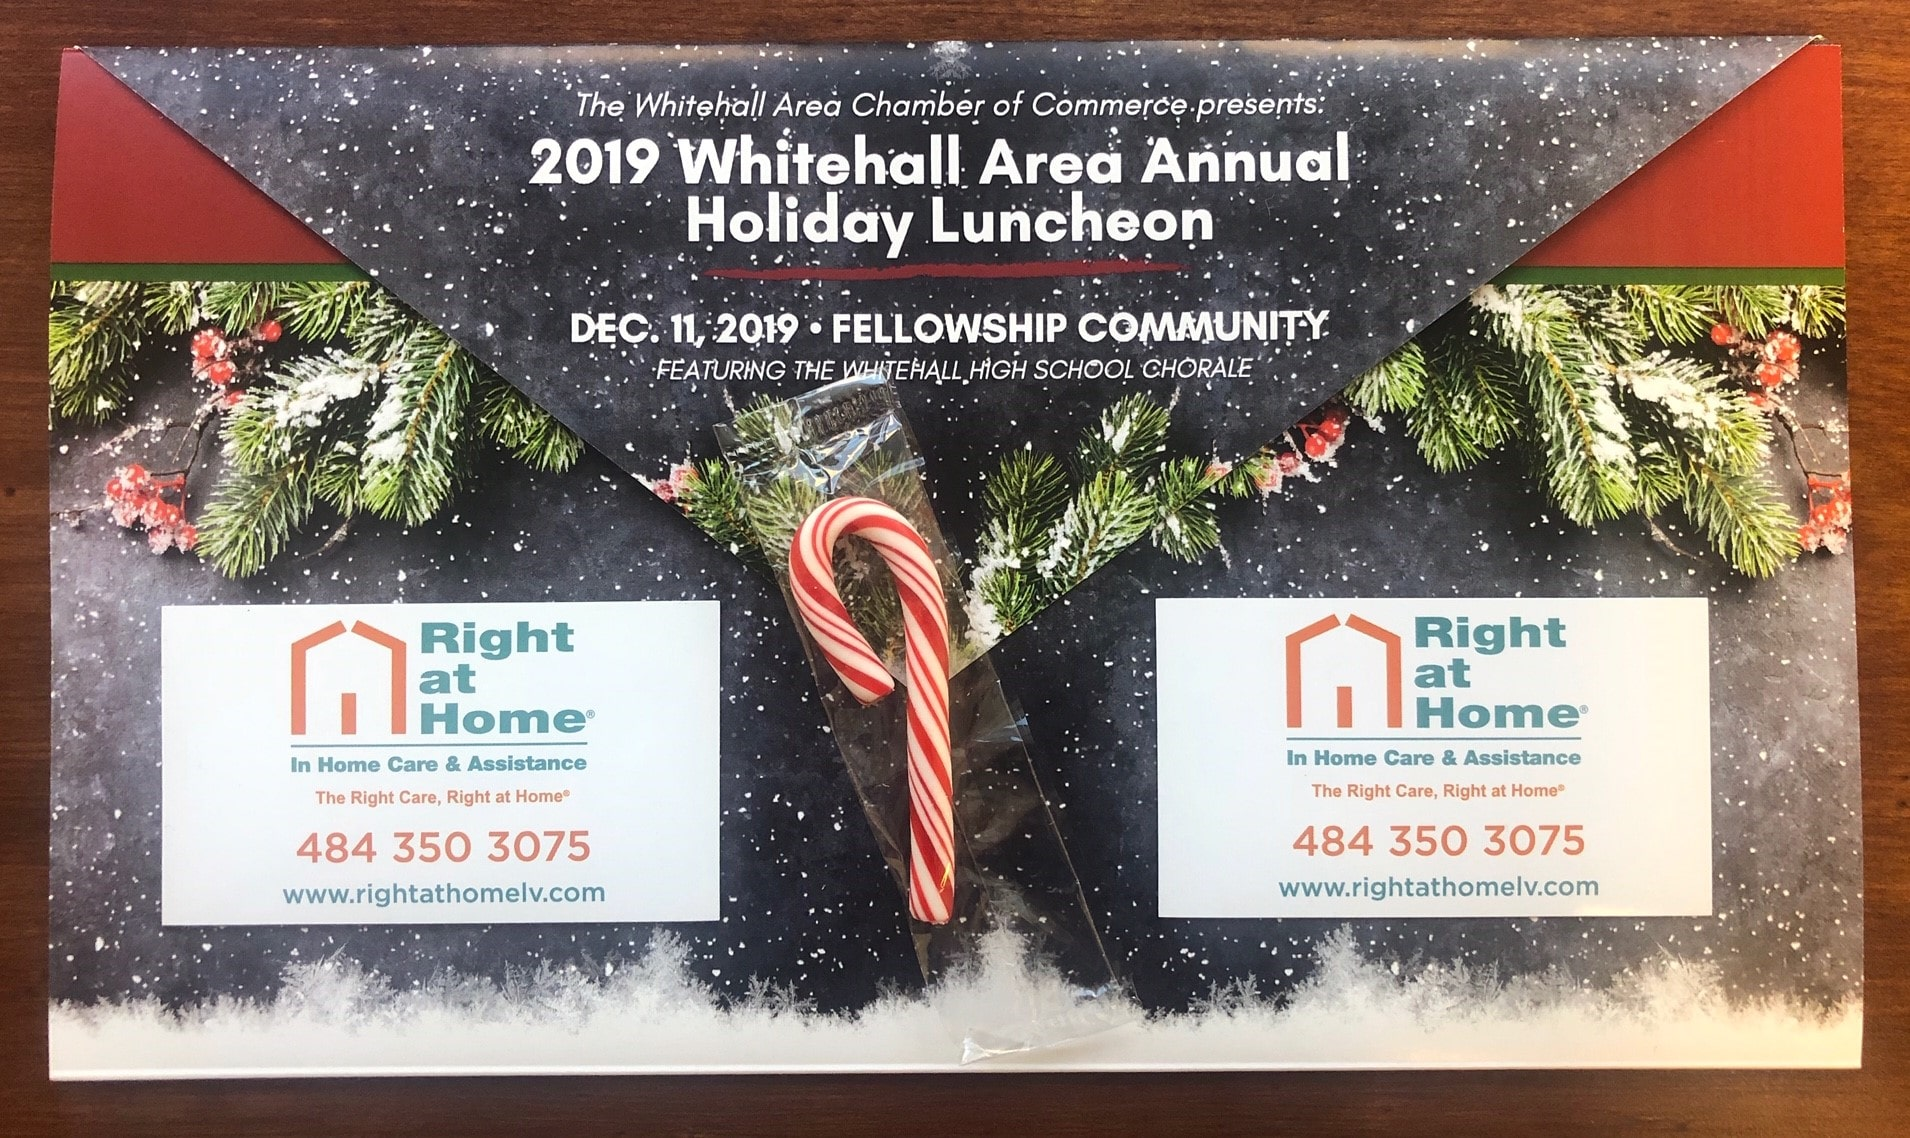 Right at Home is a proud sponsor of the holiday luncheon